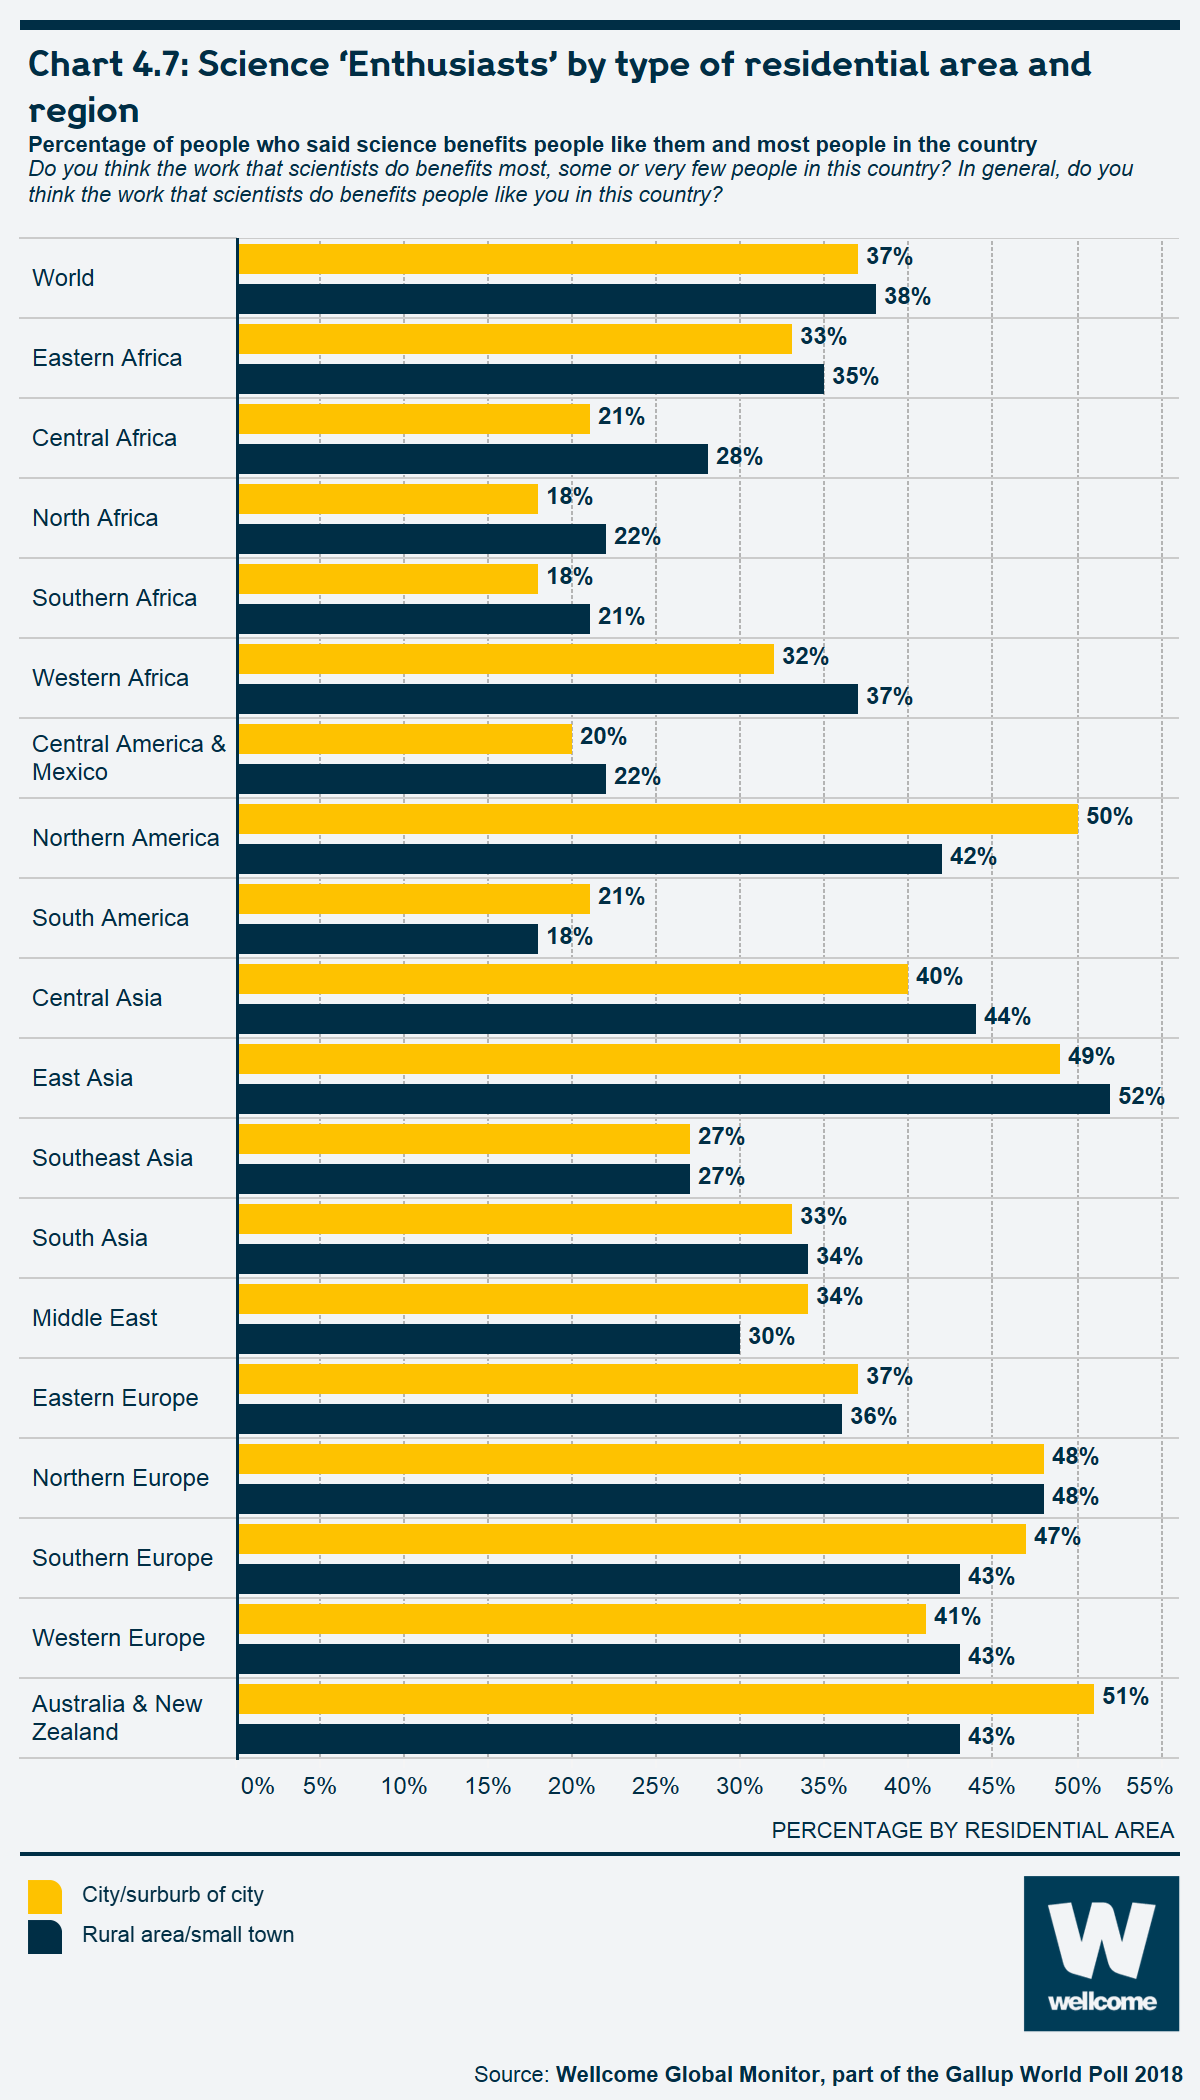 Chart 4.7 Science 'Enthusiasts' by type of residential area and region